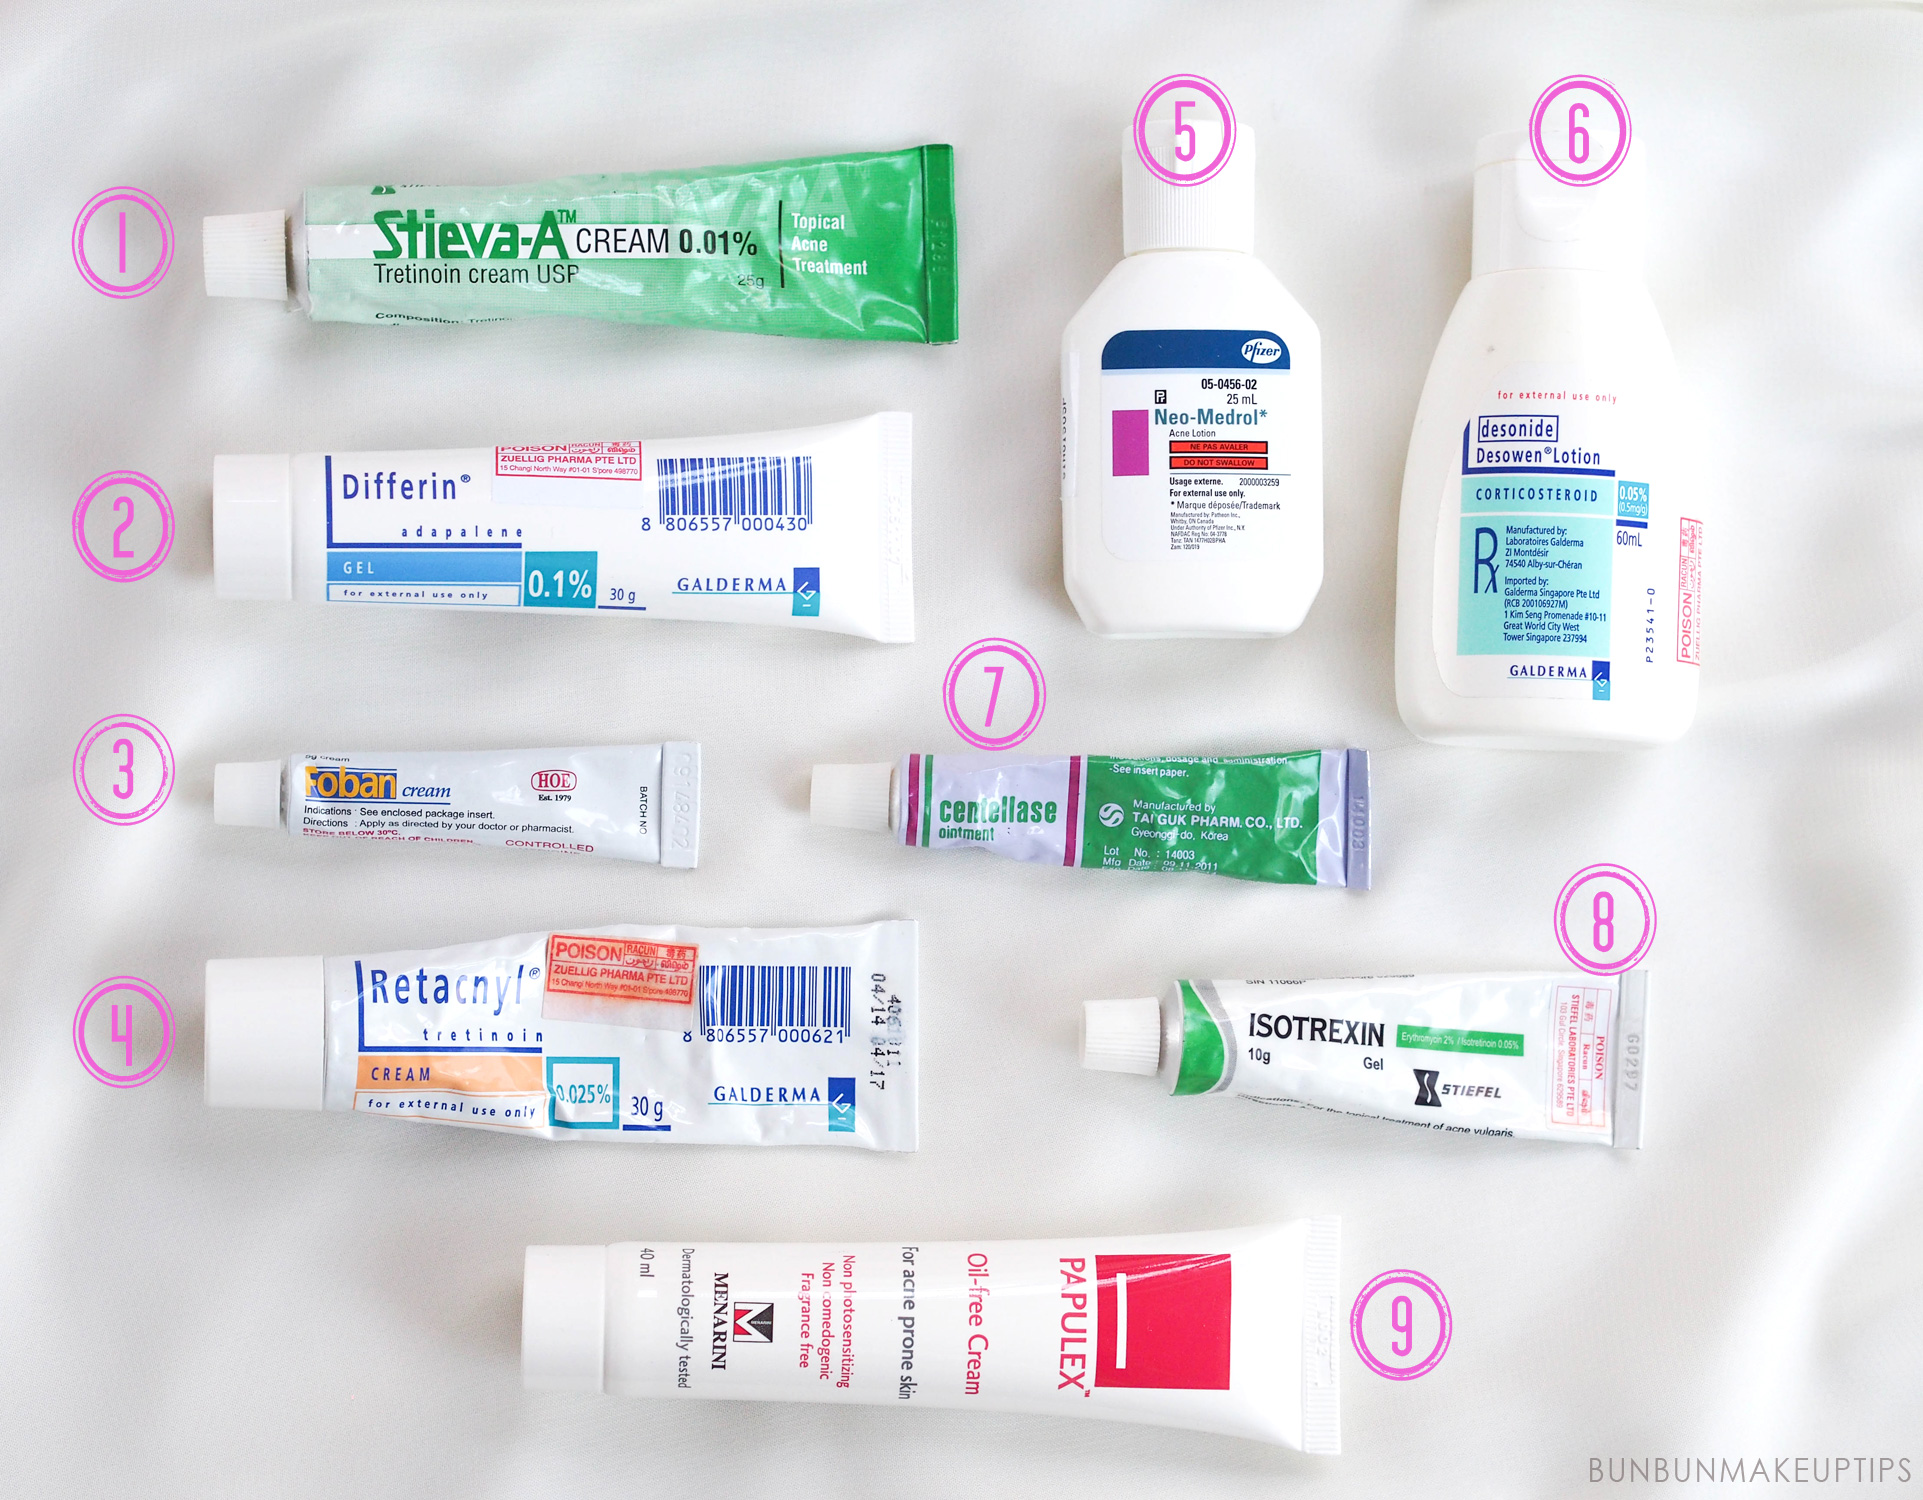 Here's How My Skincare Routine Has Changed After 2 Years